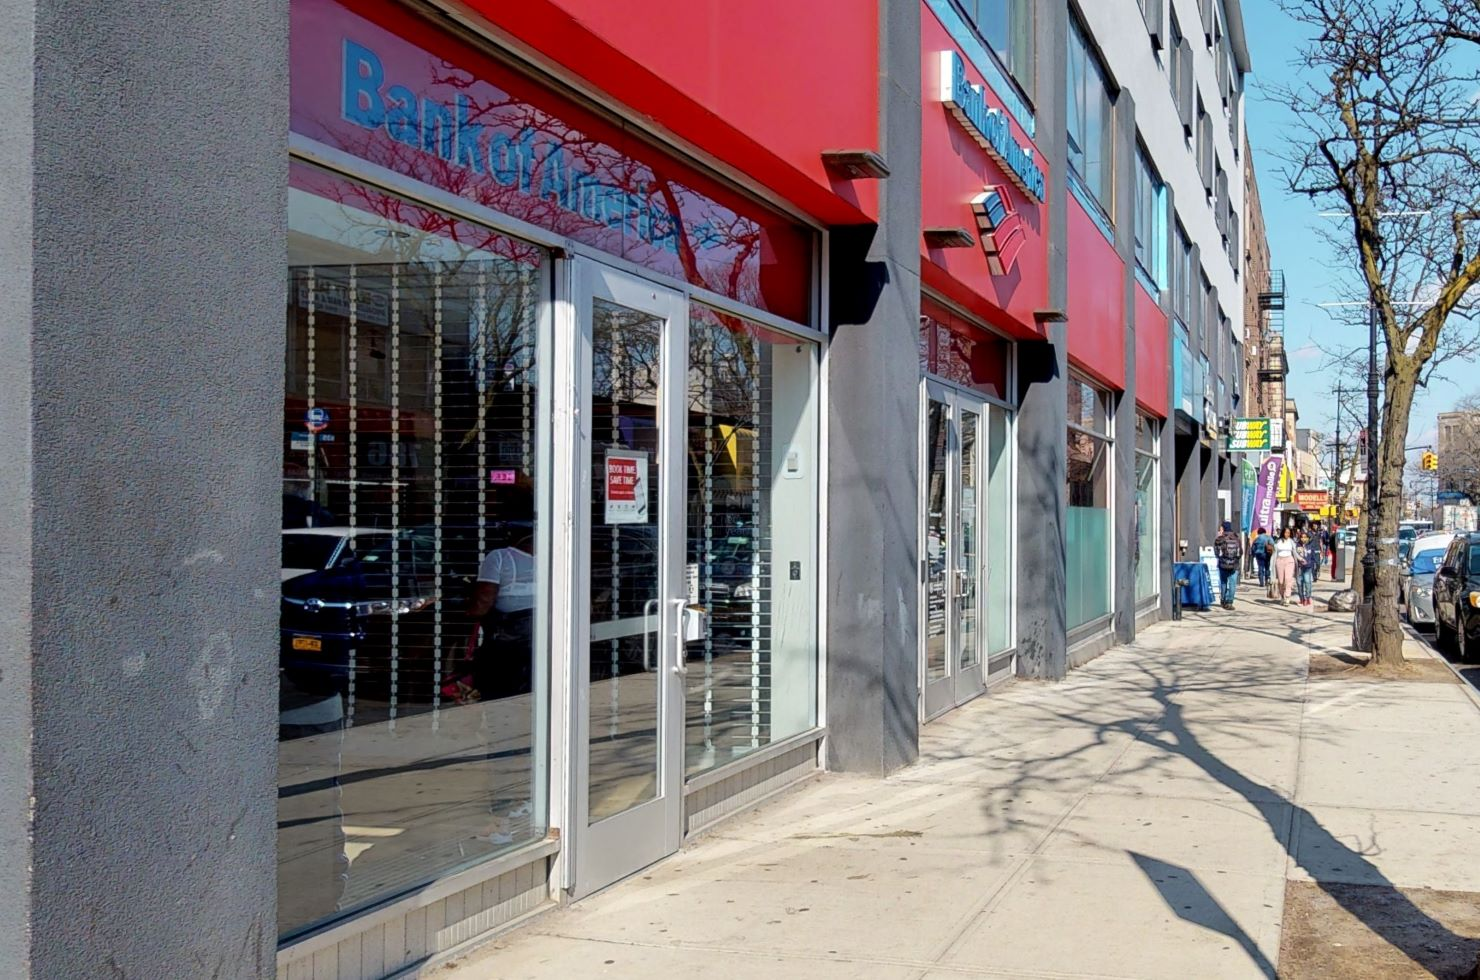 Bank of America financial center with walk-up ATM   515 Ocean Ave, Brooklyn, NY 11226